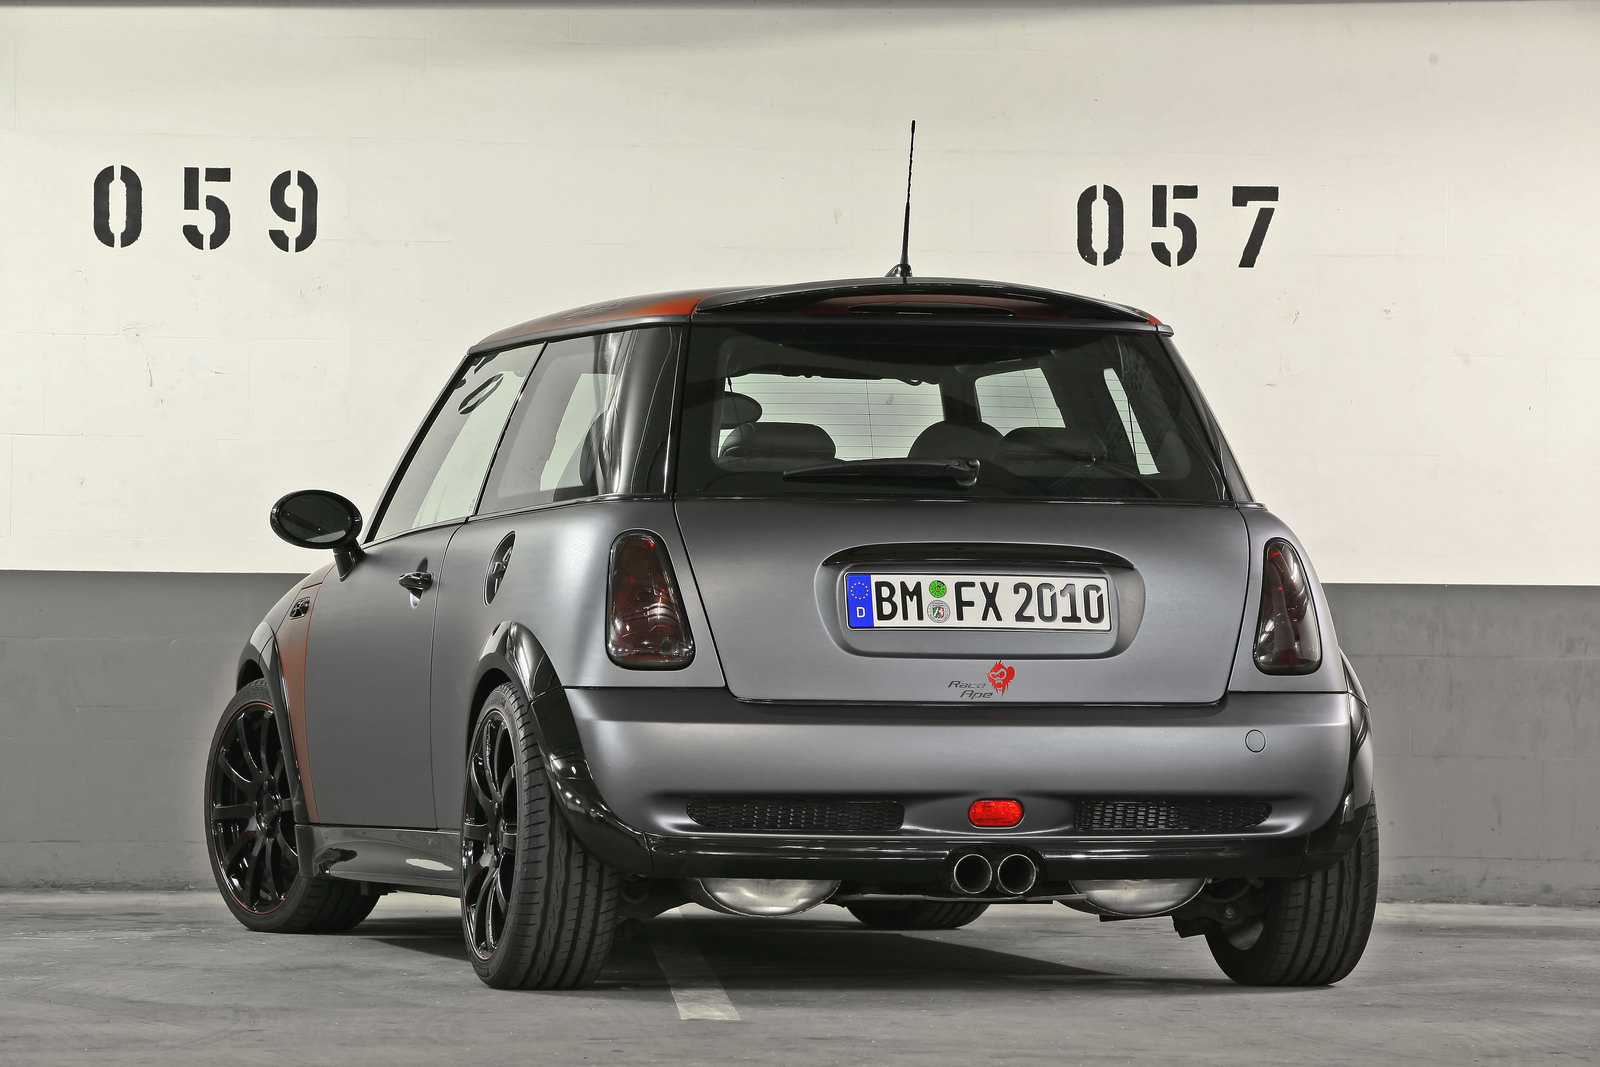 coverefx revisits mini cooper s r53 today 39 s auto reviews. Black Bedroom Furniture Sets. Home Design Ideas